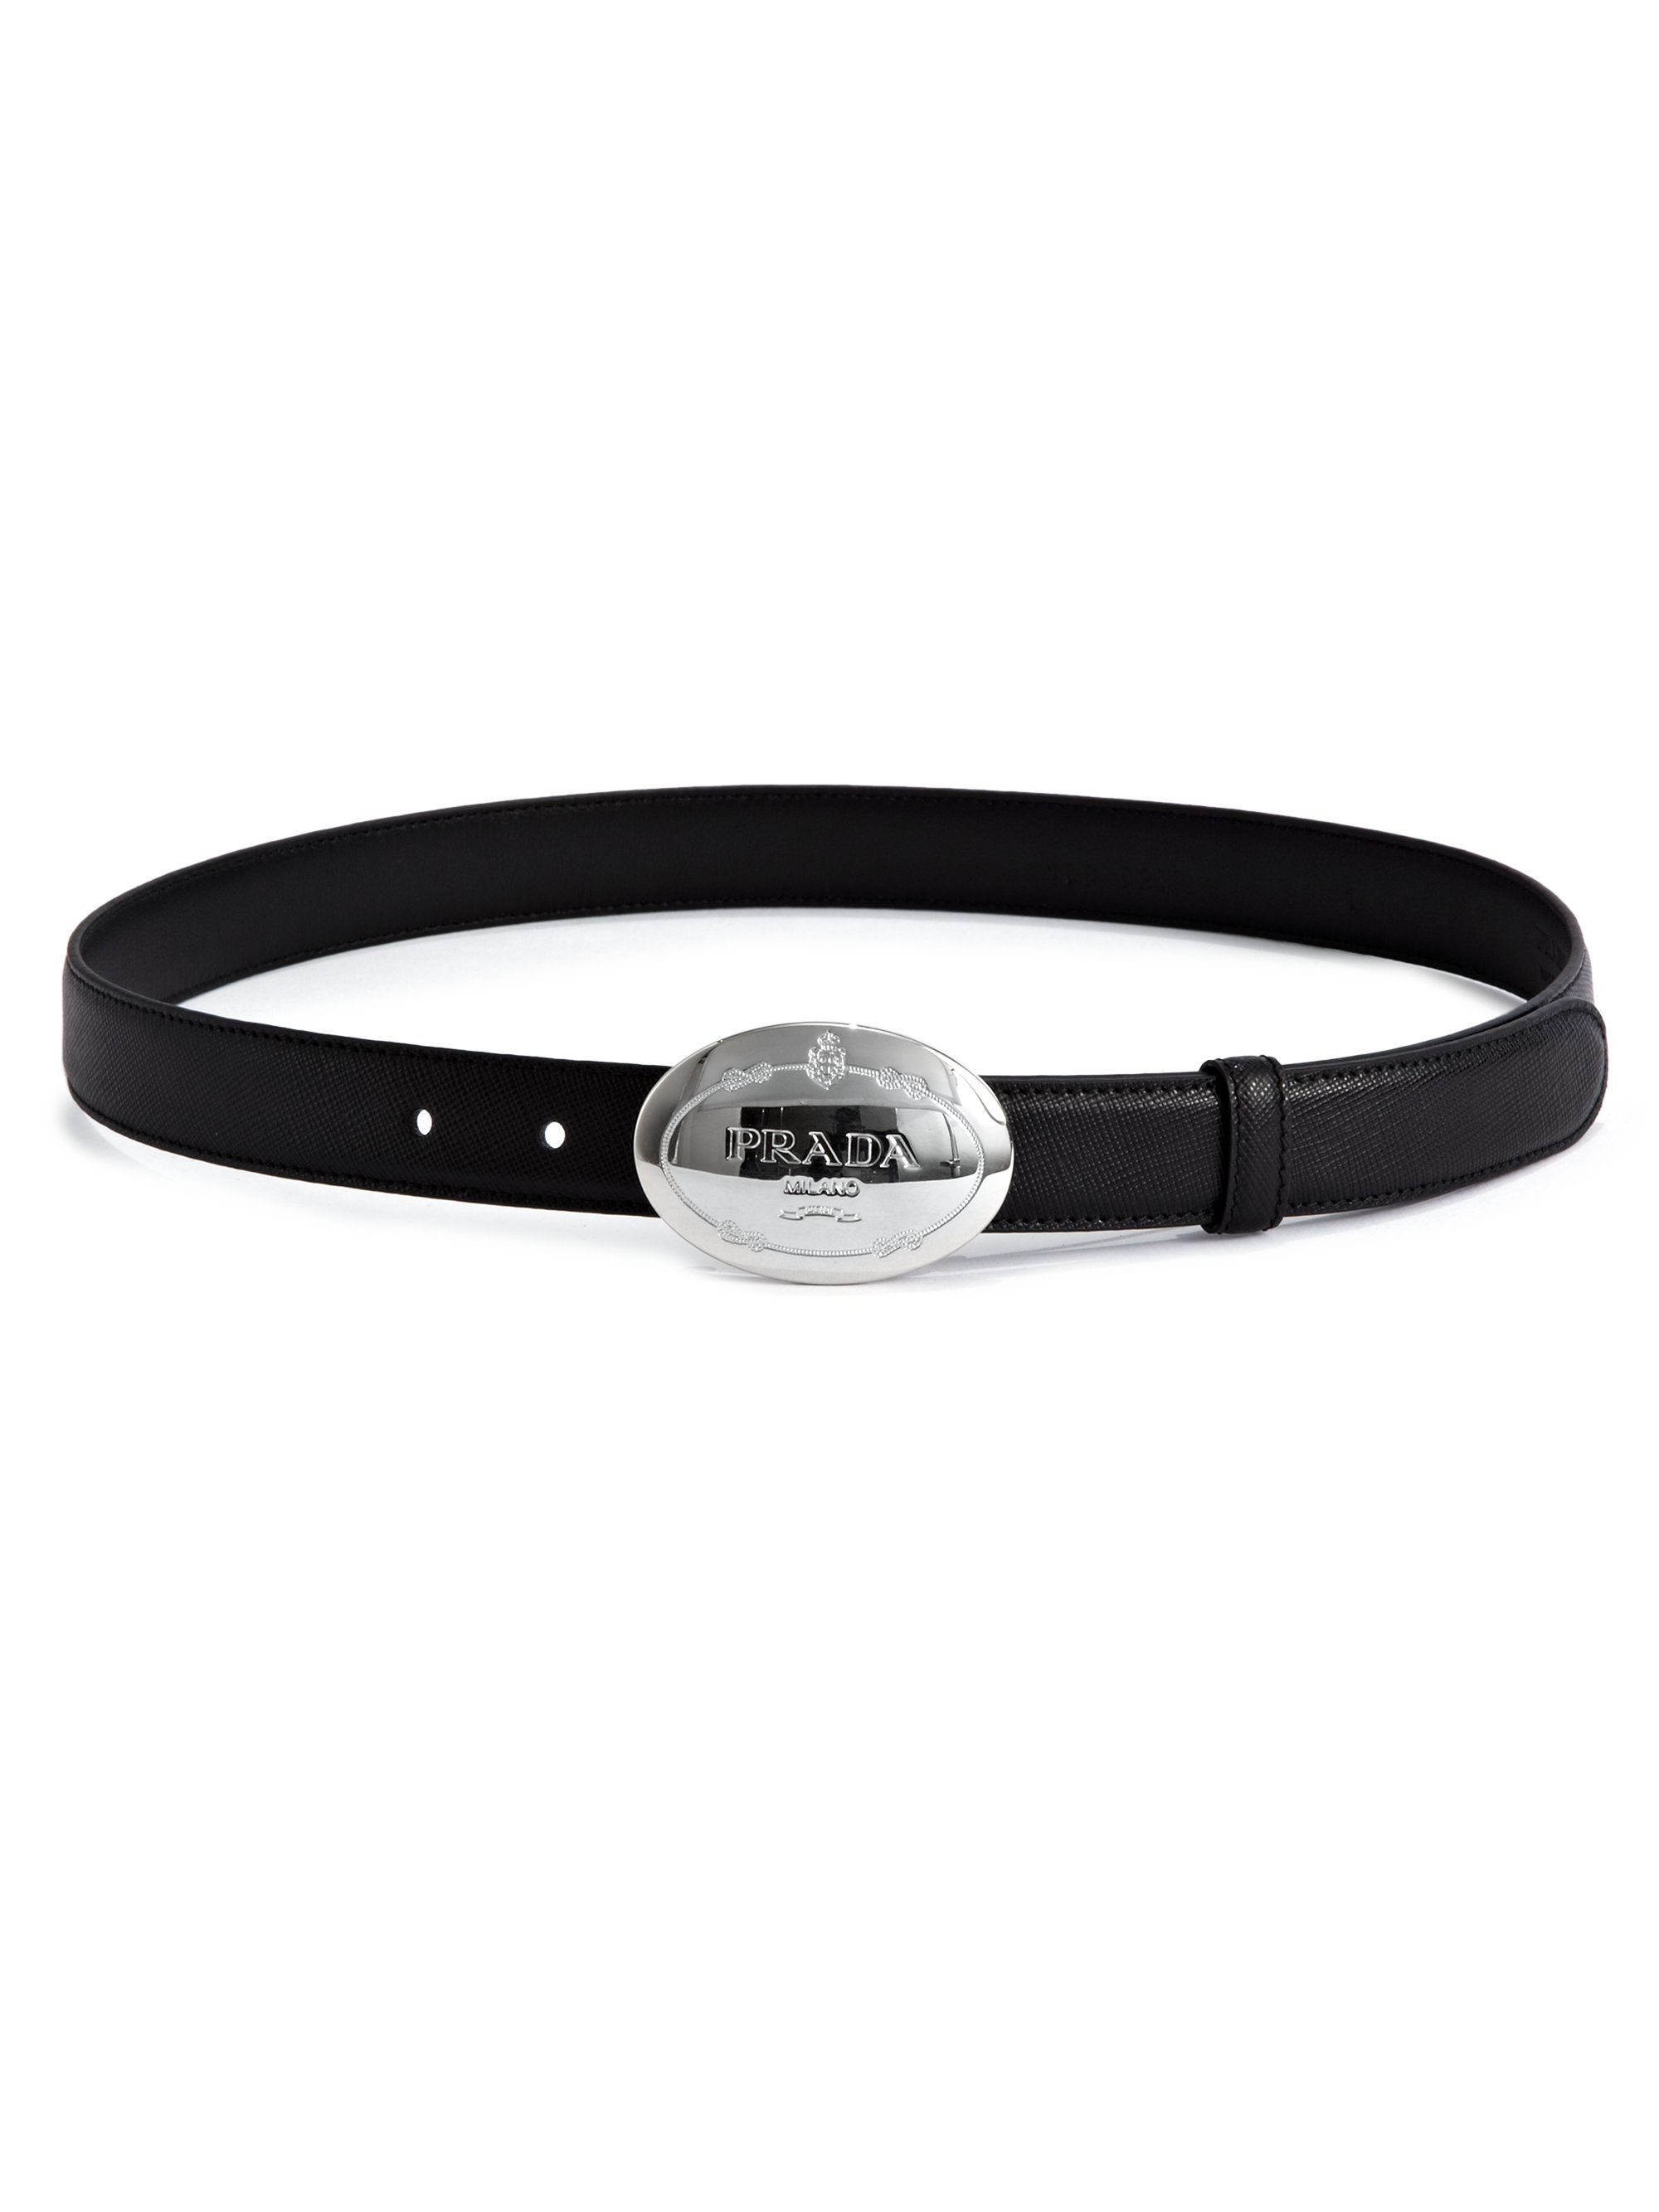 Prada Logo Buckle Saffiano Leather Belt in Black | Lyst